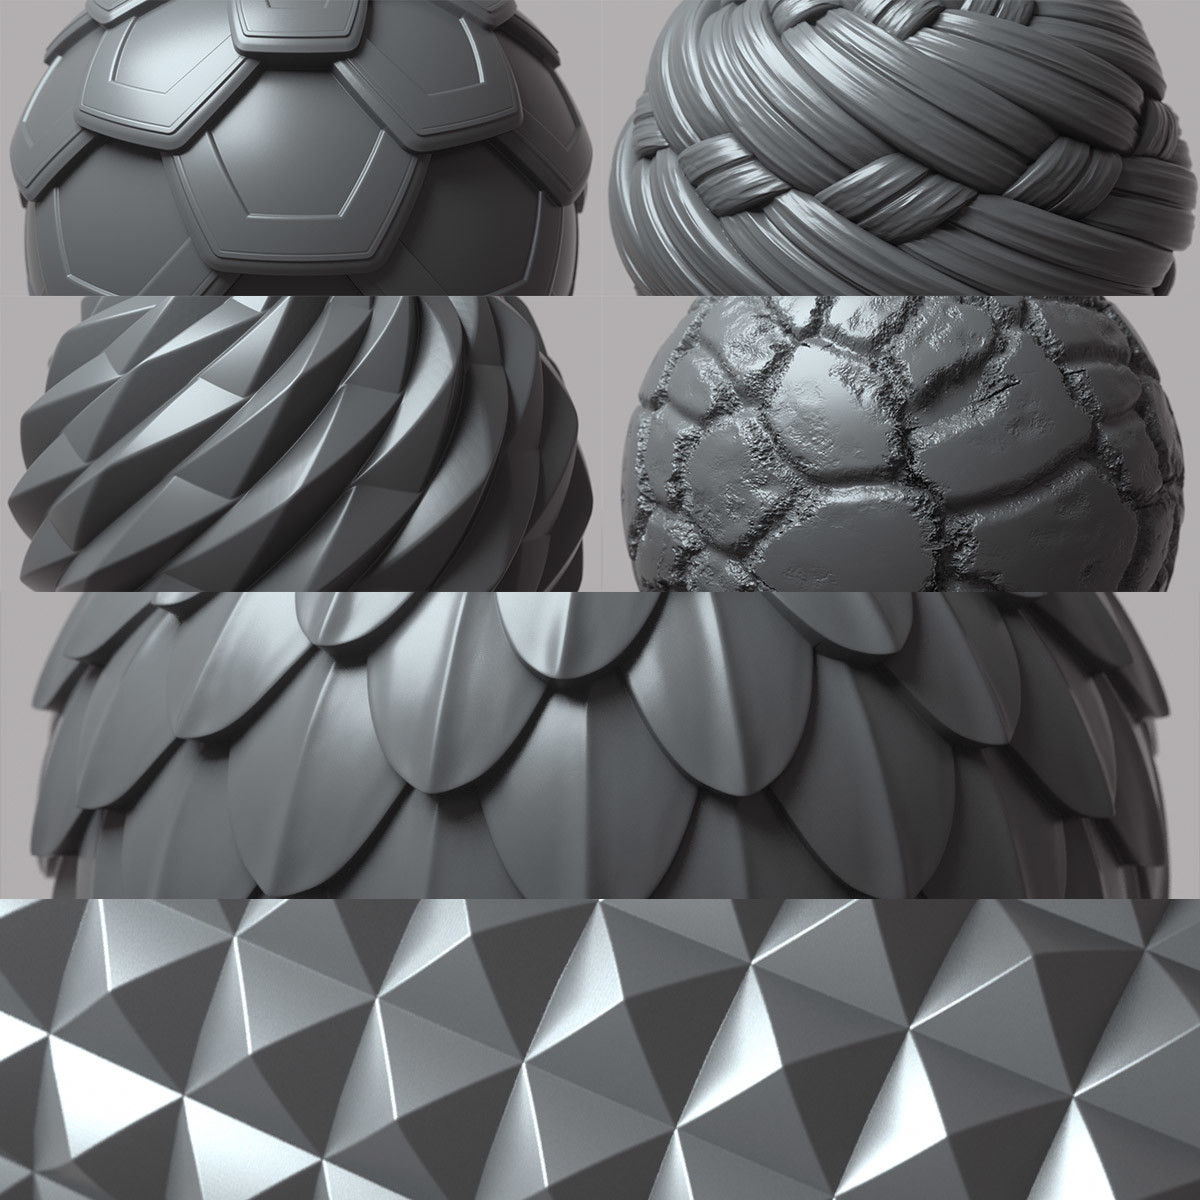 Travis davids 100 tileable displacement patterns preview 6